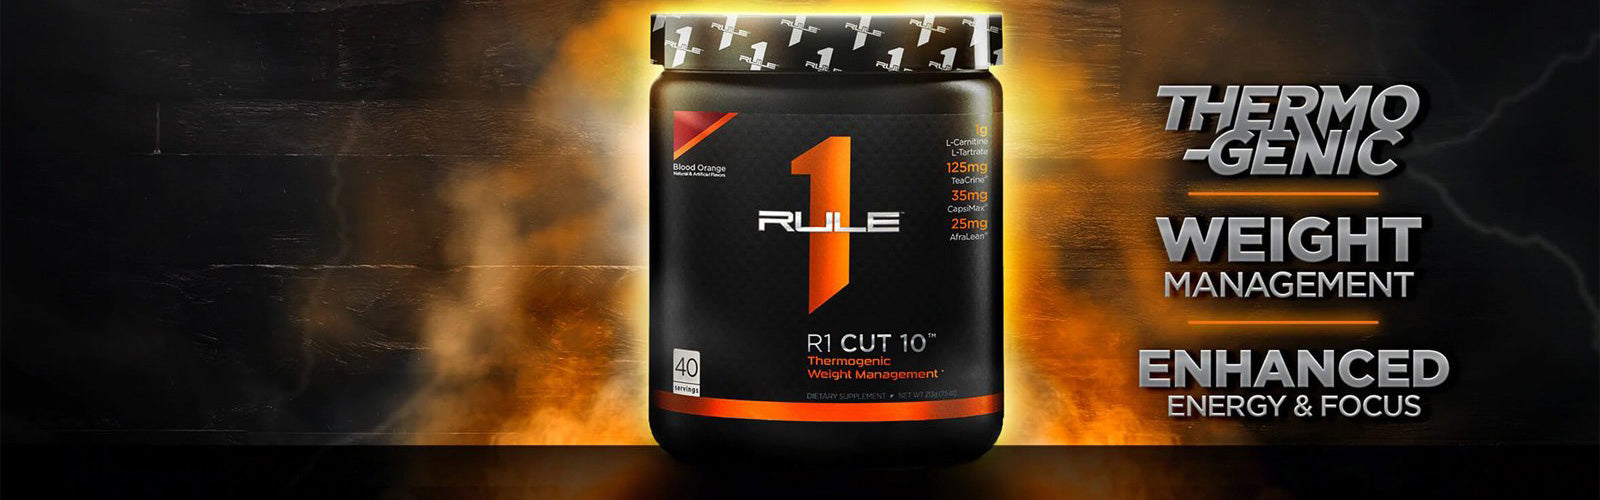 R1 CUT 10 IS HERE!